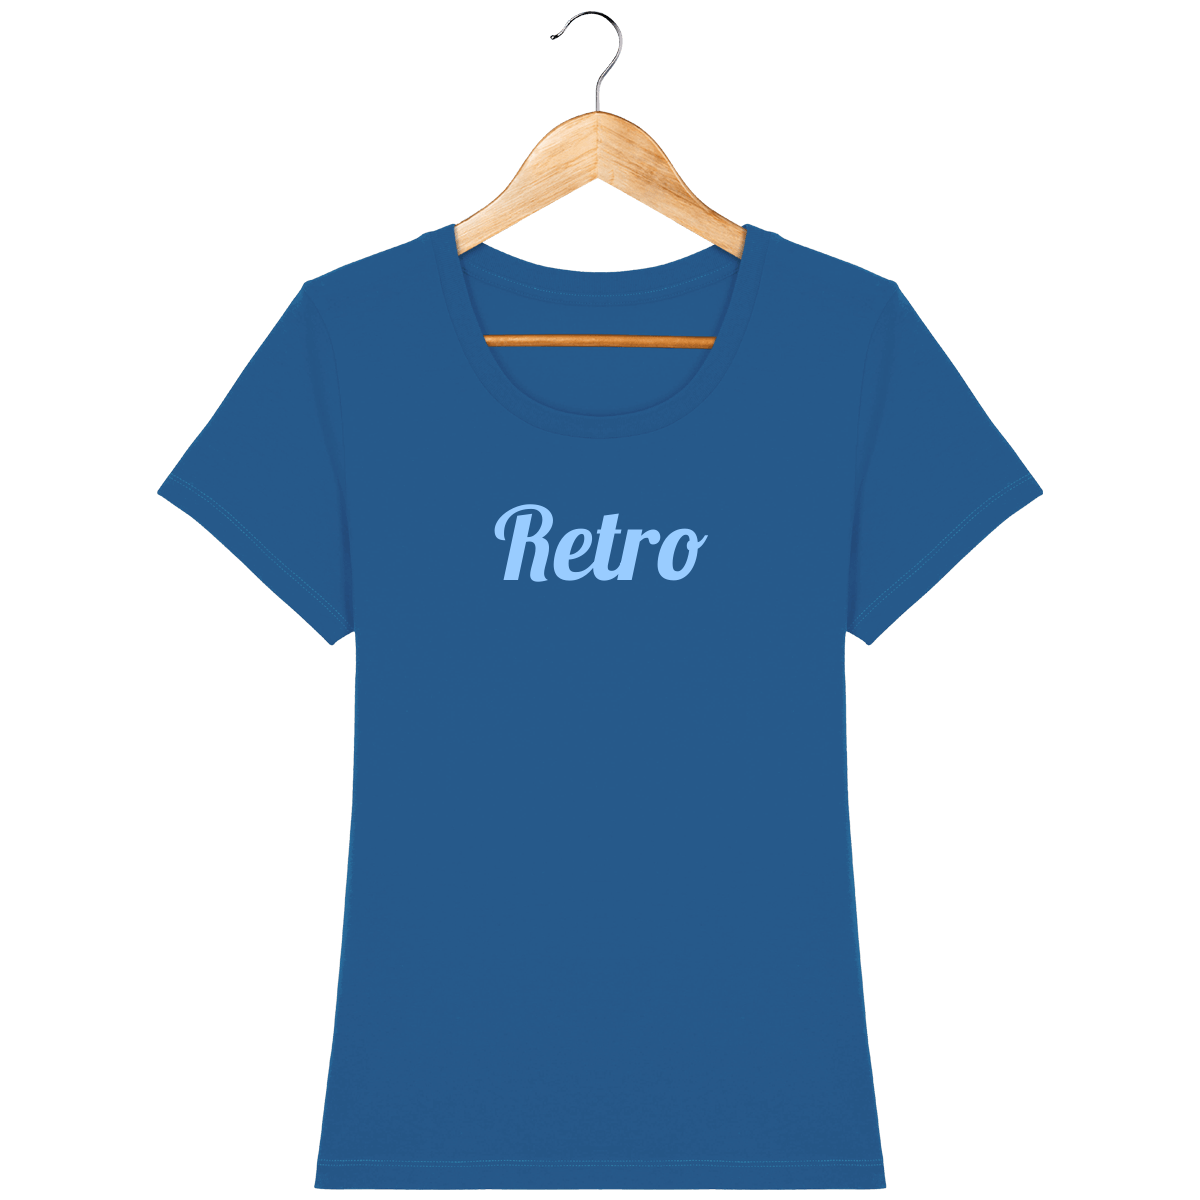 tshirt-bio-retro-heatherblackdenim-paleblue_royal-blue_face